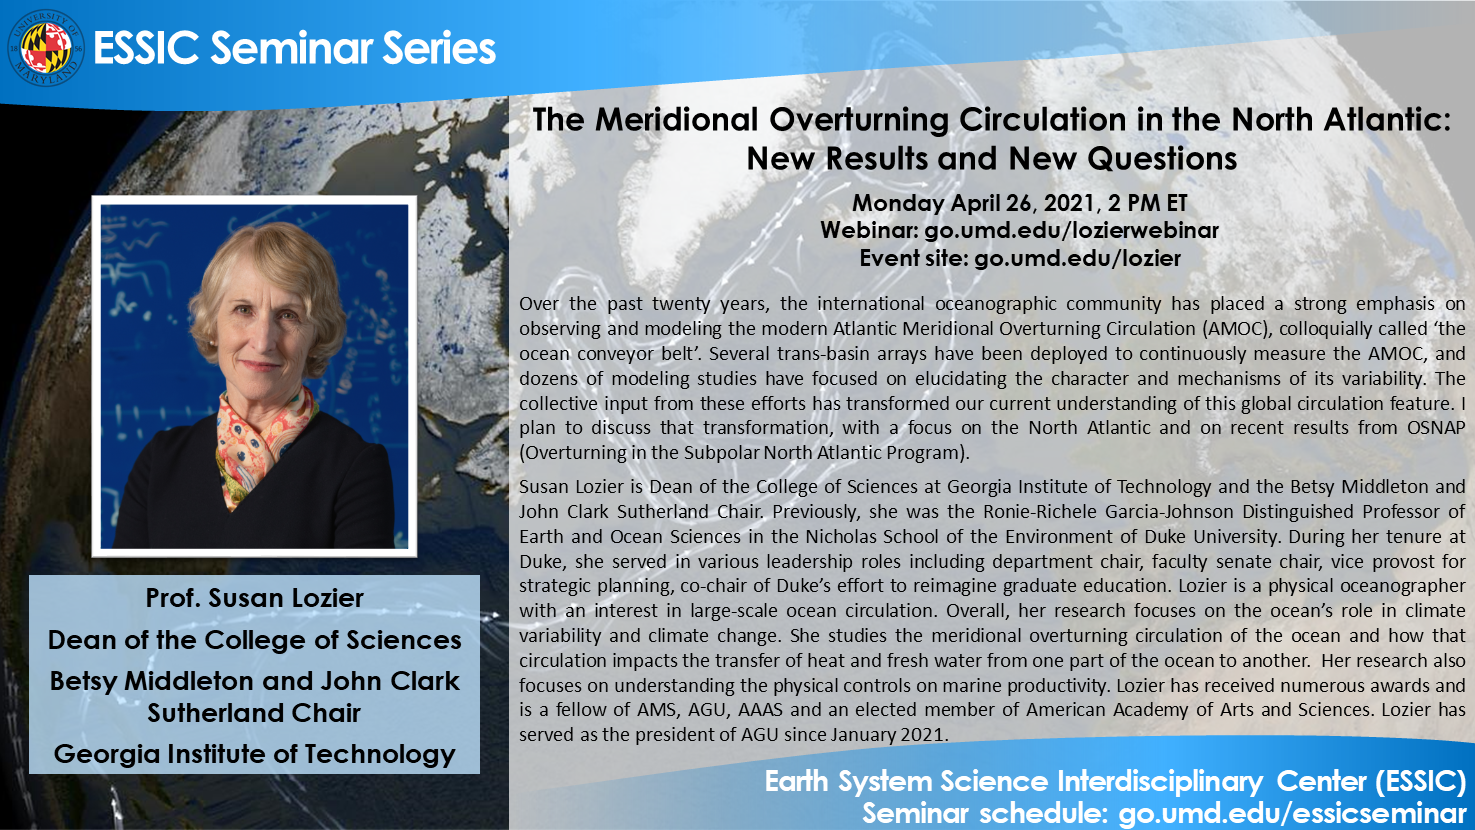 Dr. Lozier's seminar flyer. All text is on the webpage.